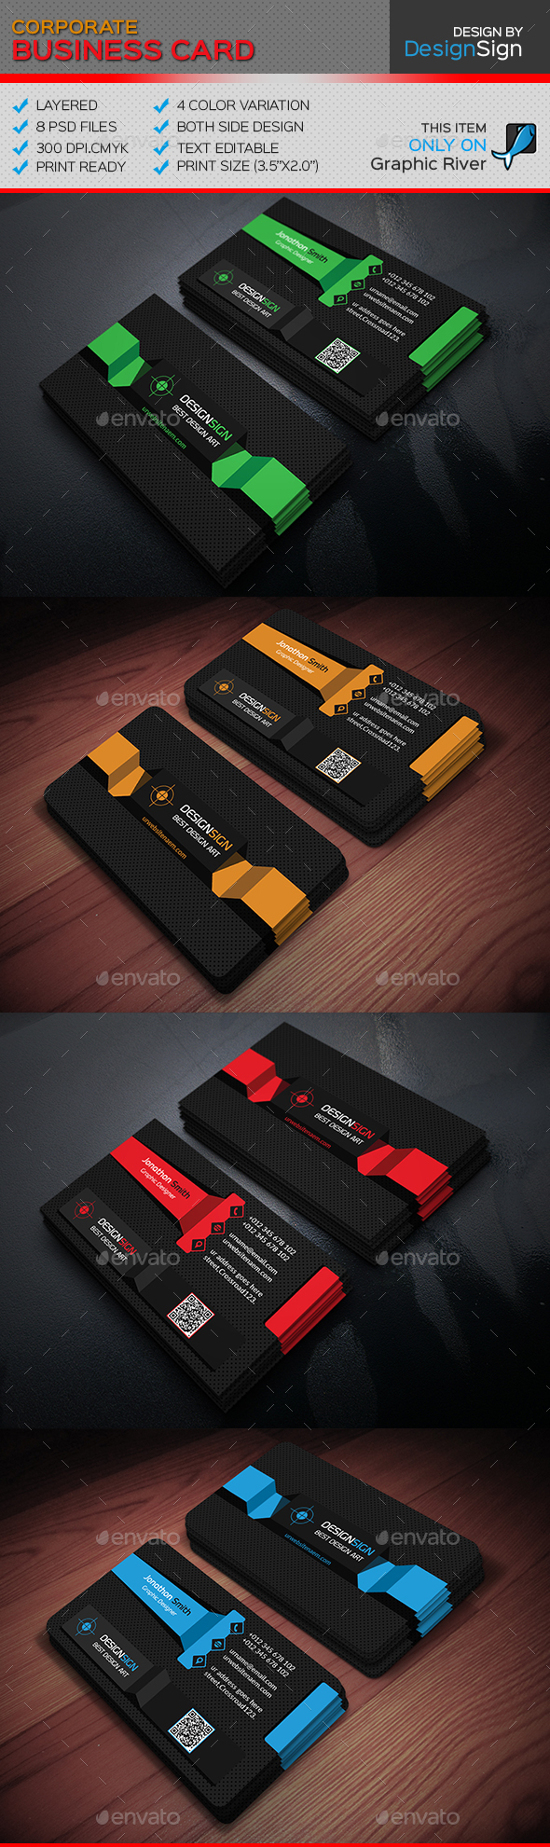 17 best business card templates for corporate business card templates wajeb Image collections